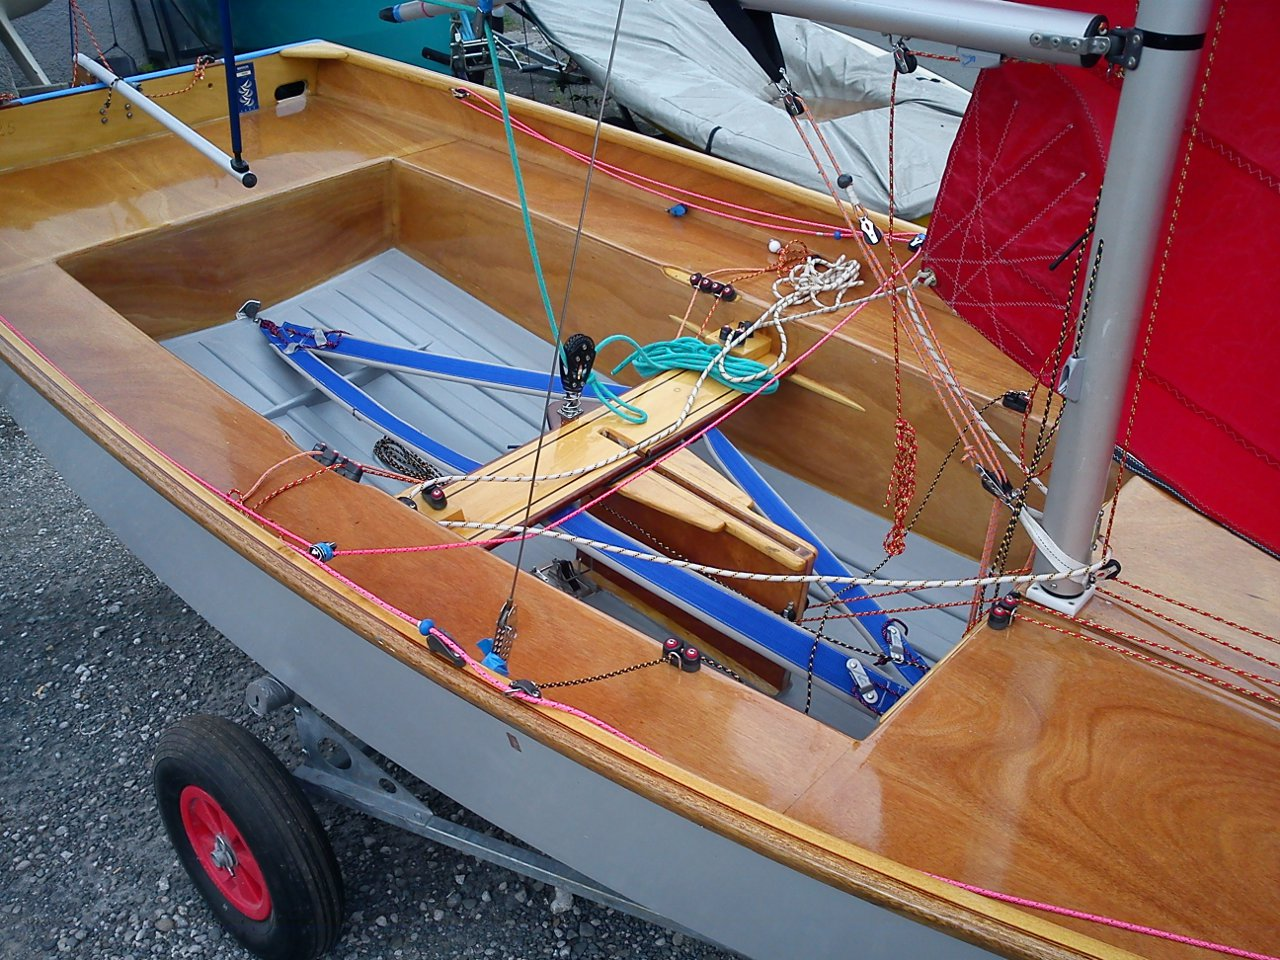 Cockpit of a Mirror dinghy fitted with padded toe straps with clam cleat fitted at the ends